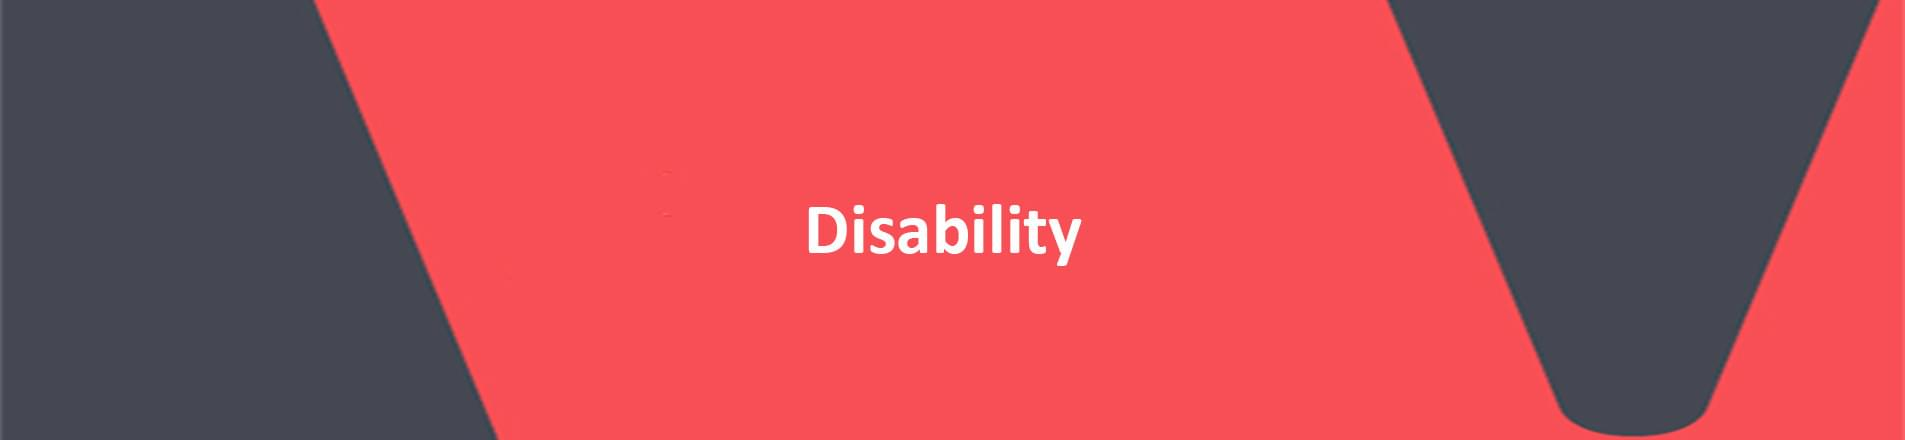 Image of the word disability in white font on a red background